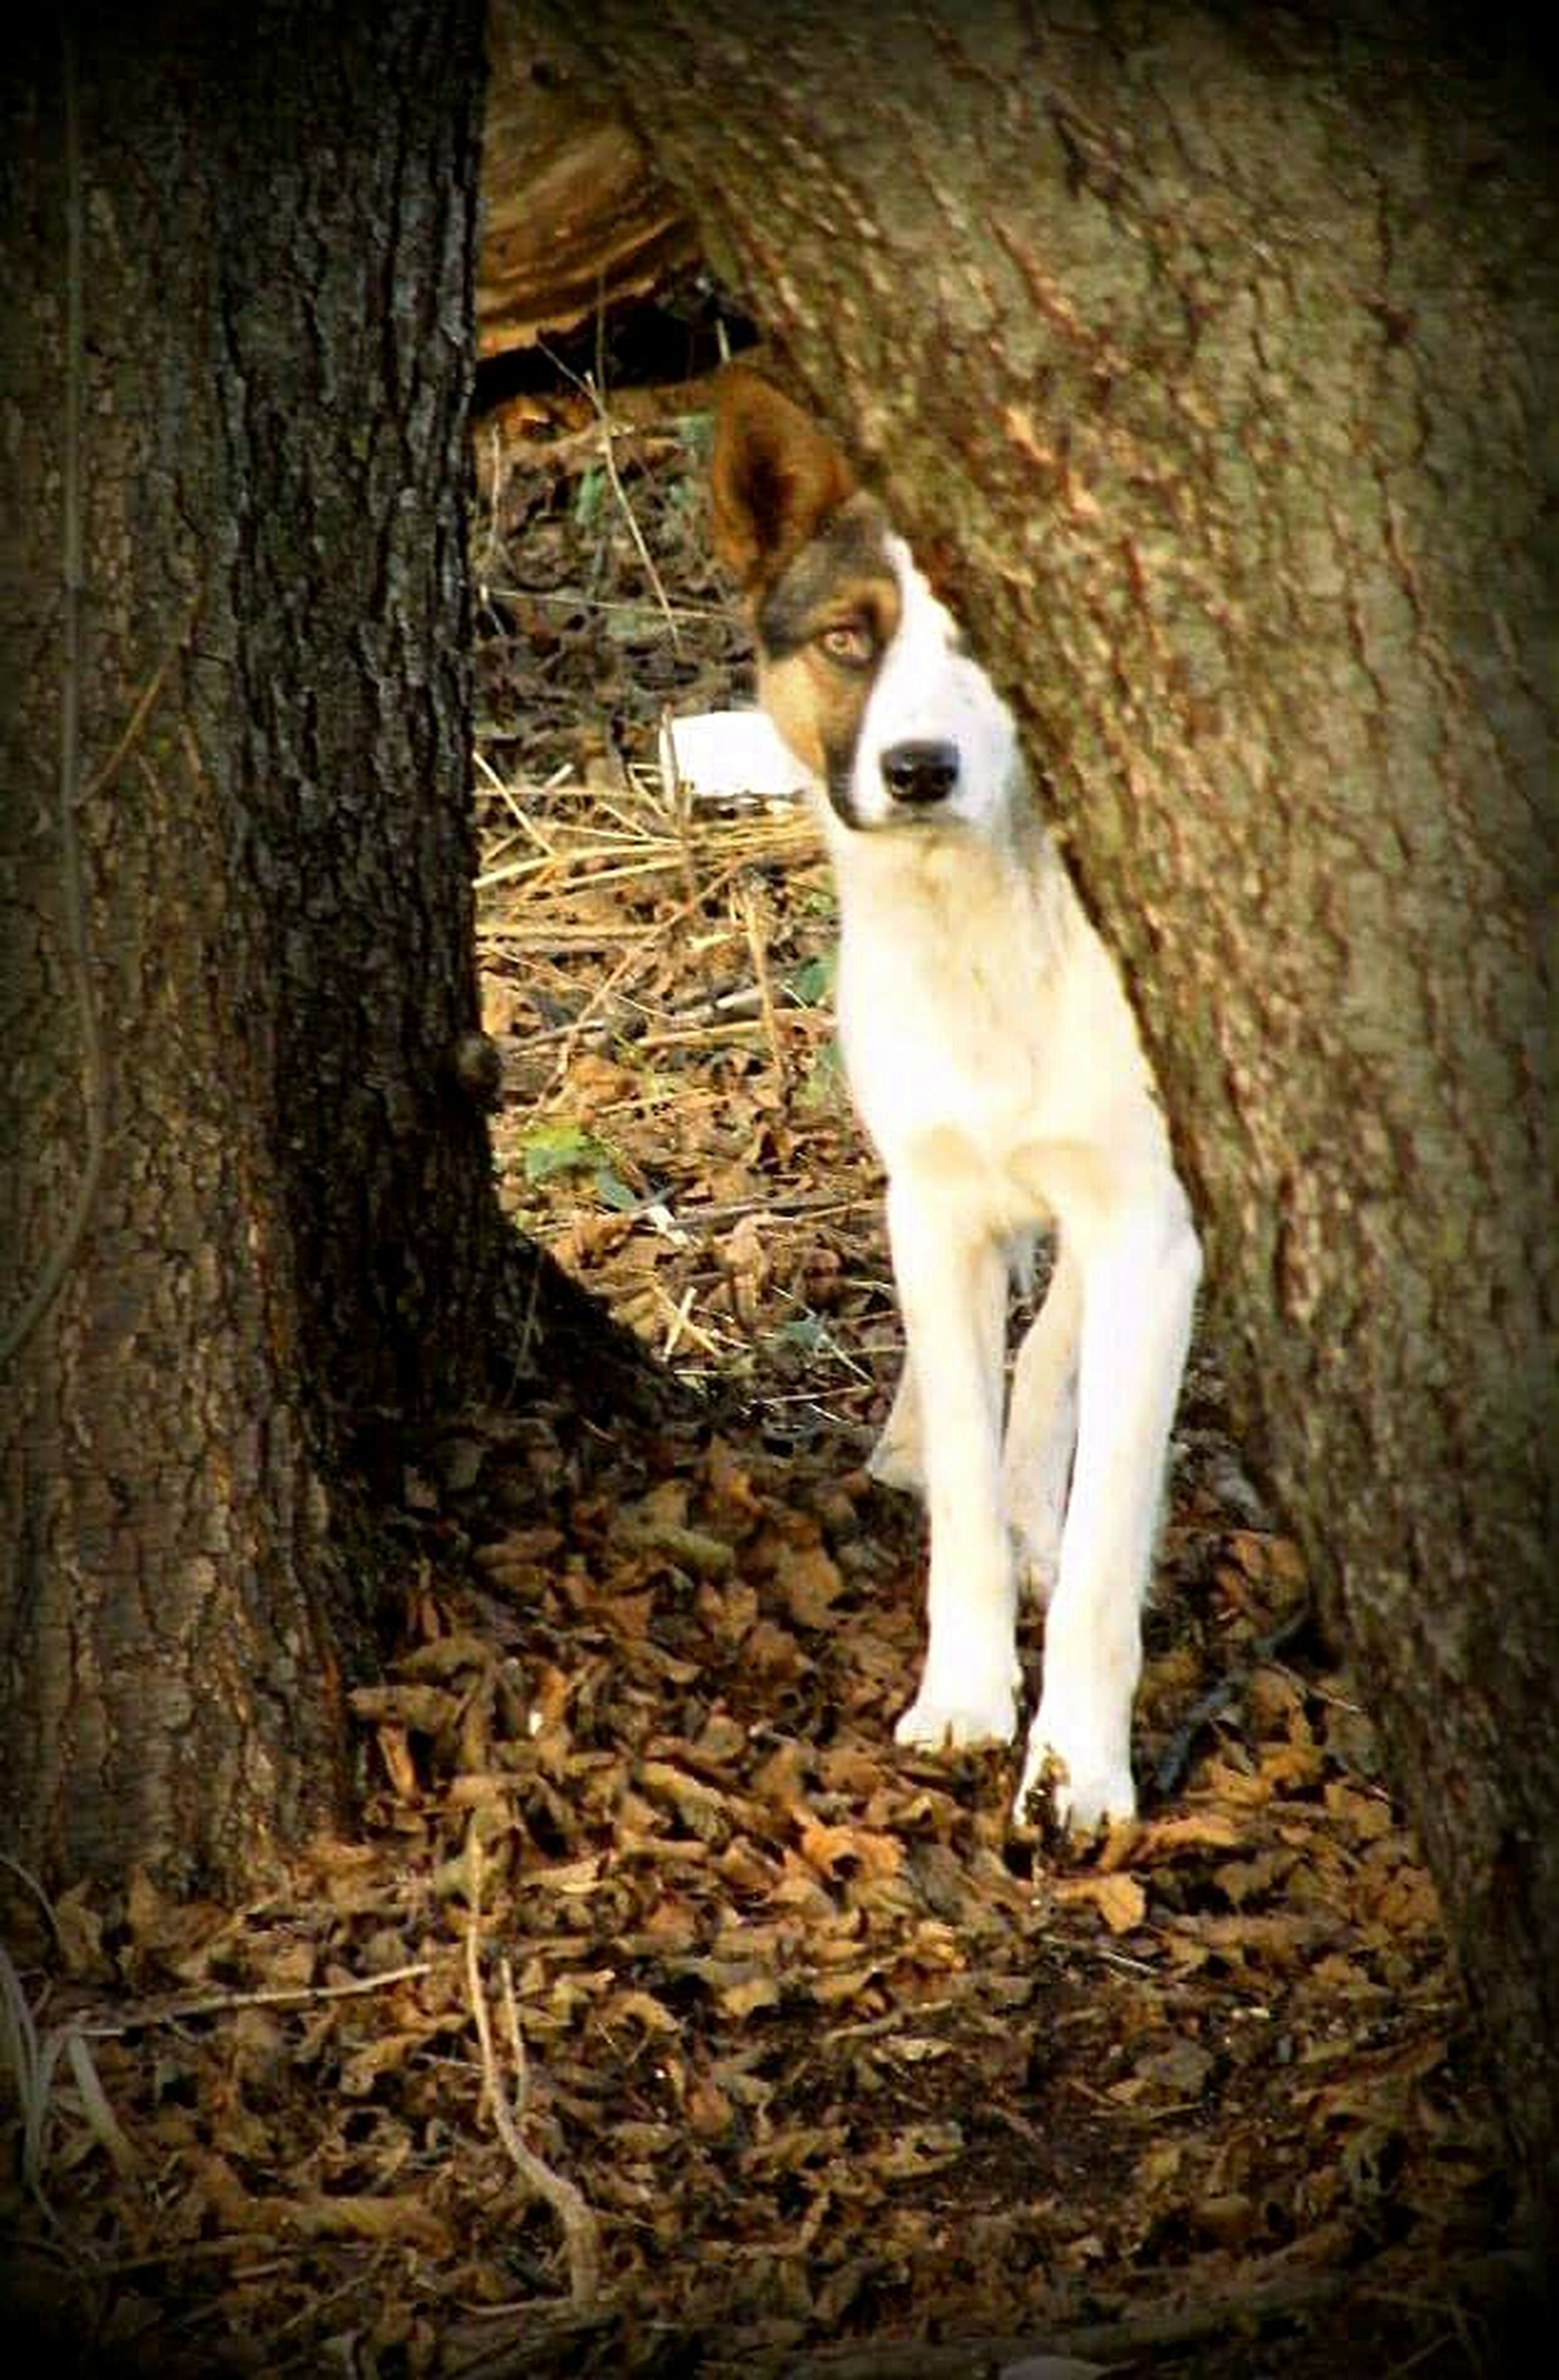 animal themes, domestic animals, mammal, one animal, pets, dog, sitting, standing, full length, young animal, zoology, white color, front view, portrait, looking at camera, outdoors, day, no people, vertebrate, field